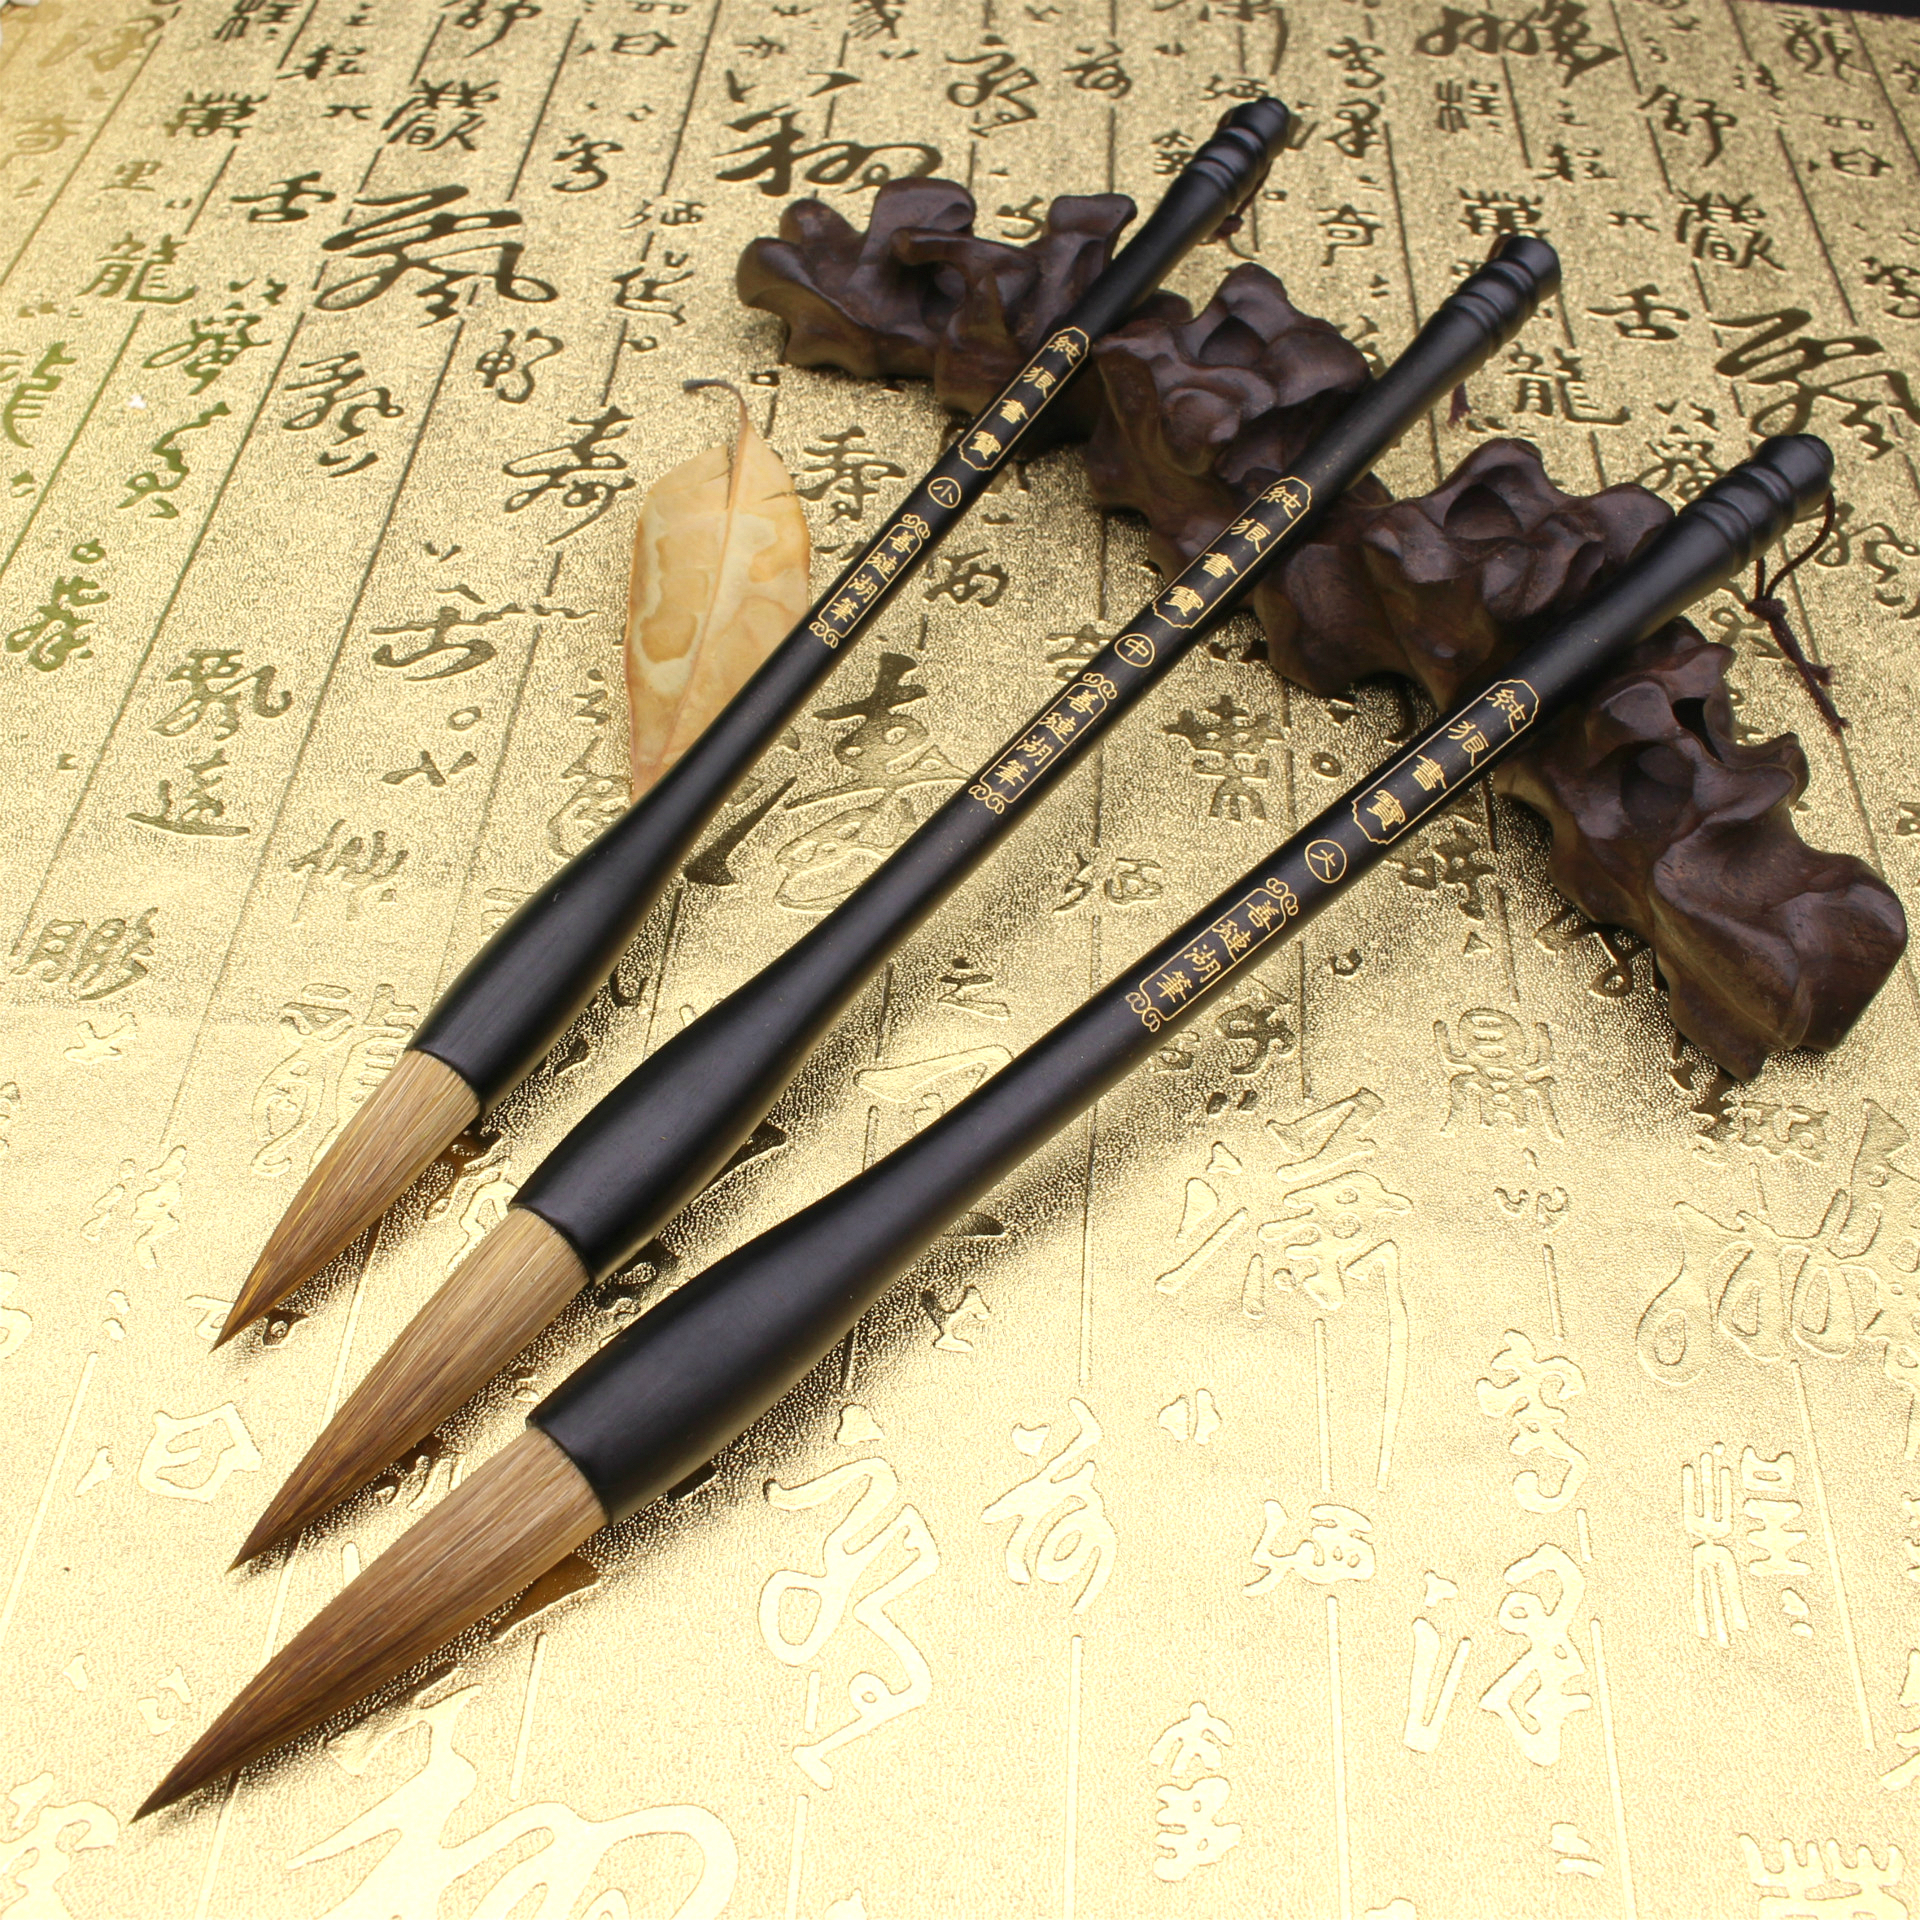 Large Middle Small Regular Script Painting Chinese Traditional Calligraphy Brush Set Pure Weasel Hair Pen Writing Brushes 3pcs pure langhao calligraphy brush all wood lake pen wenfangsibao set